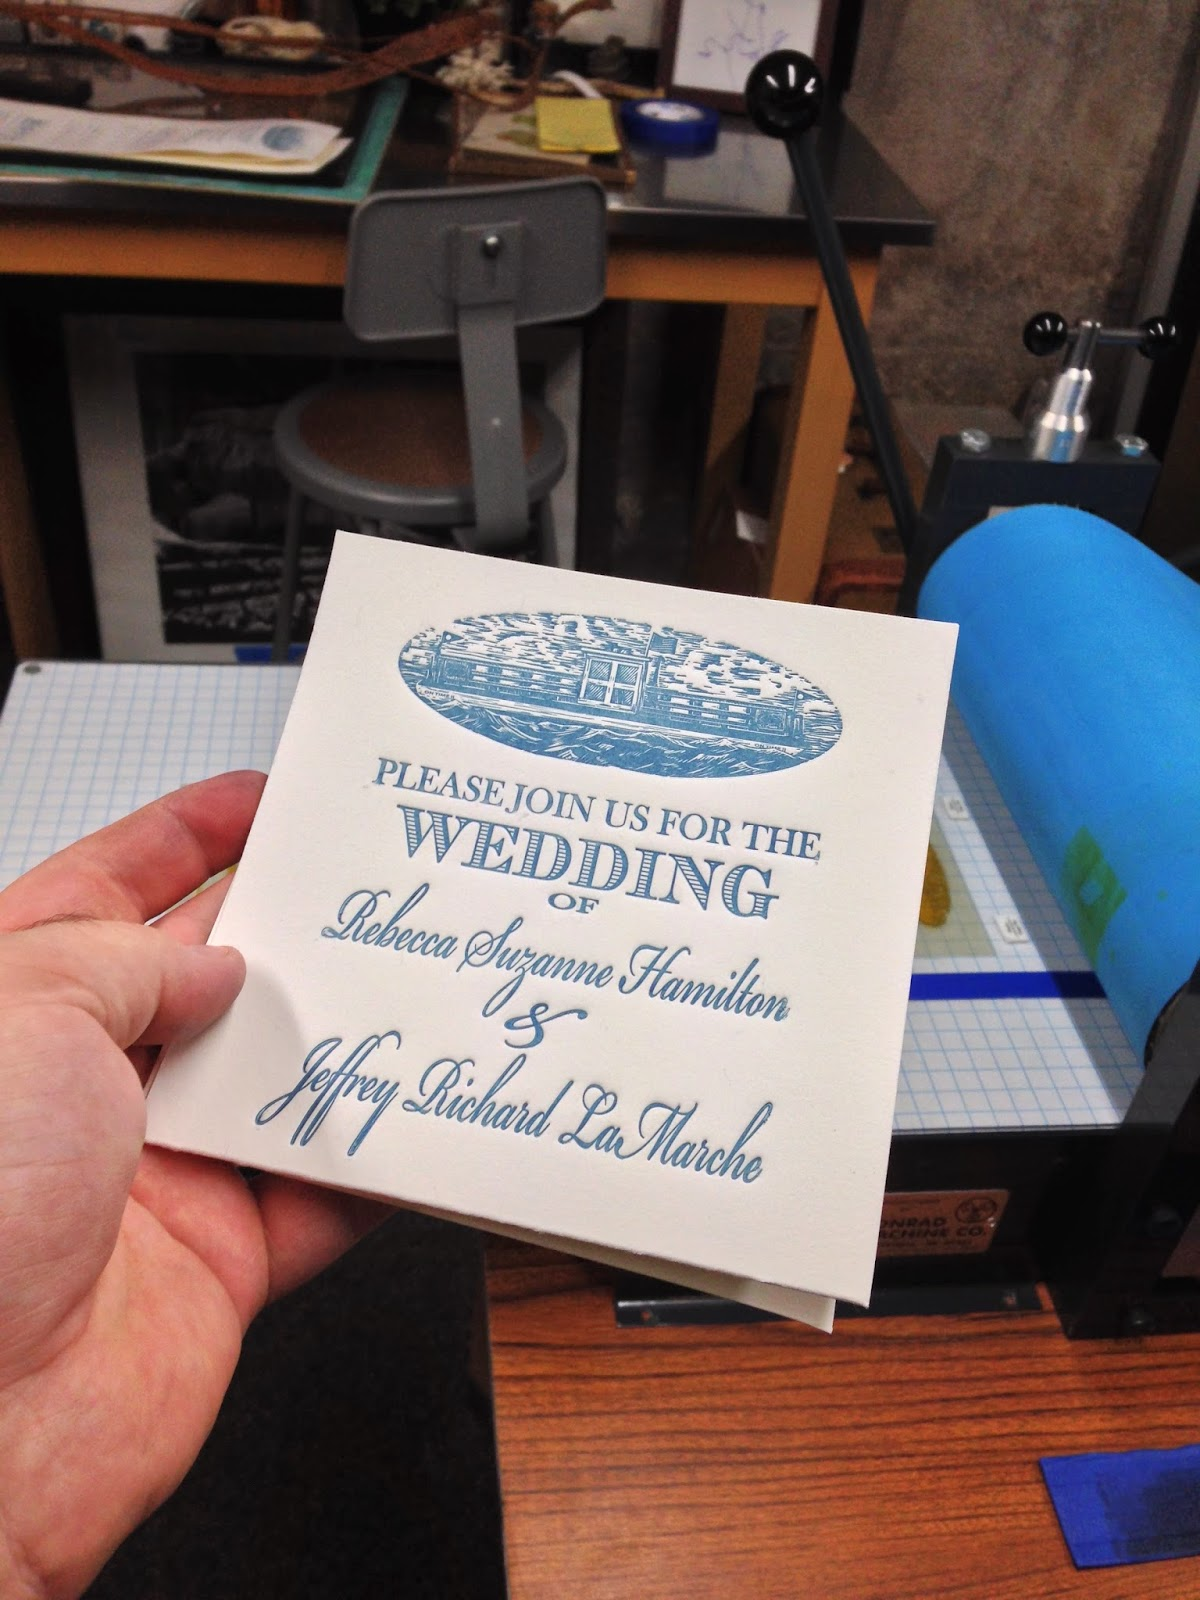 A look at the invite folded as it would slide out of its envelope.